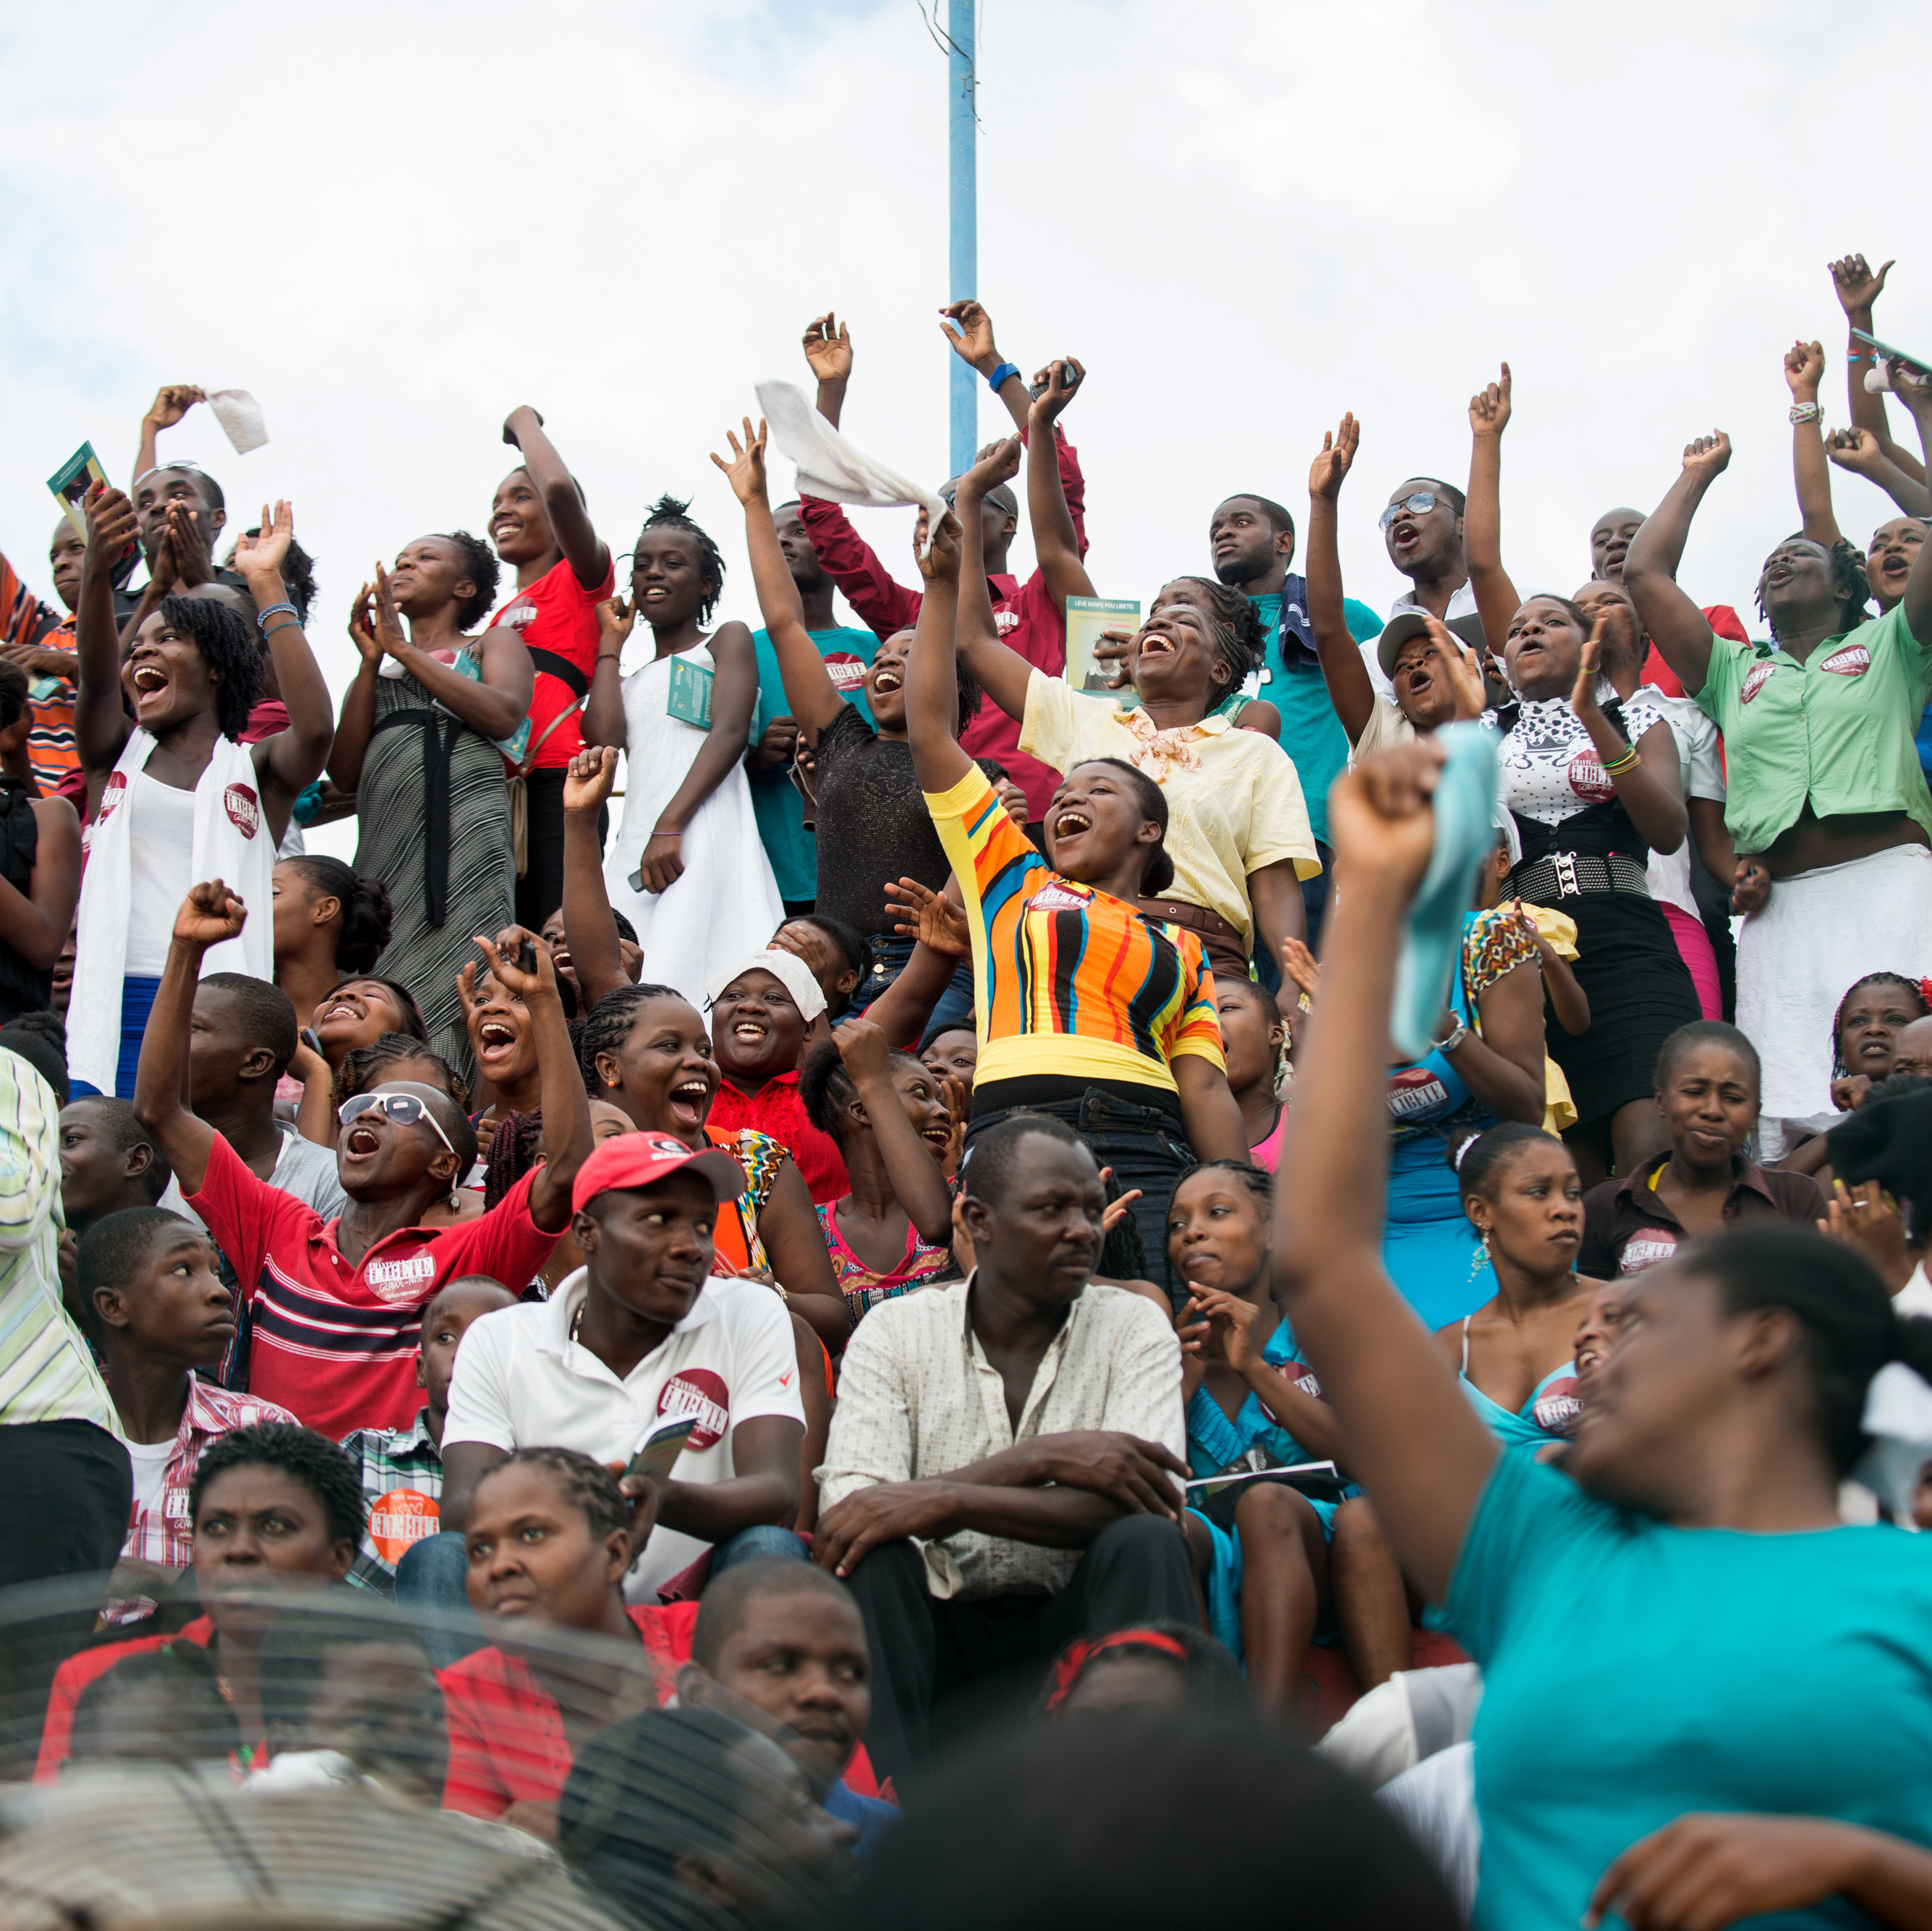 Thousands of Haitians dance and cheer as the finalists sing their songs of child slavery at Port-au-Prince's soccer stadium on Aug. 23.